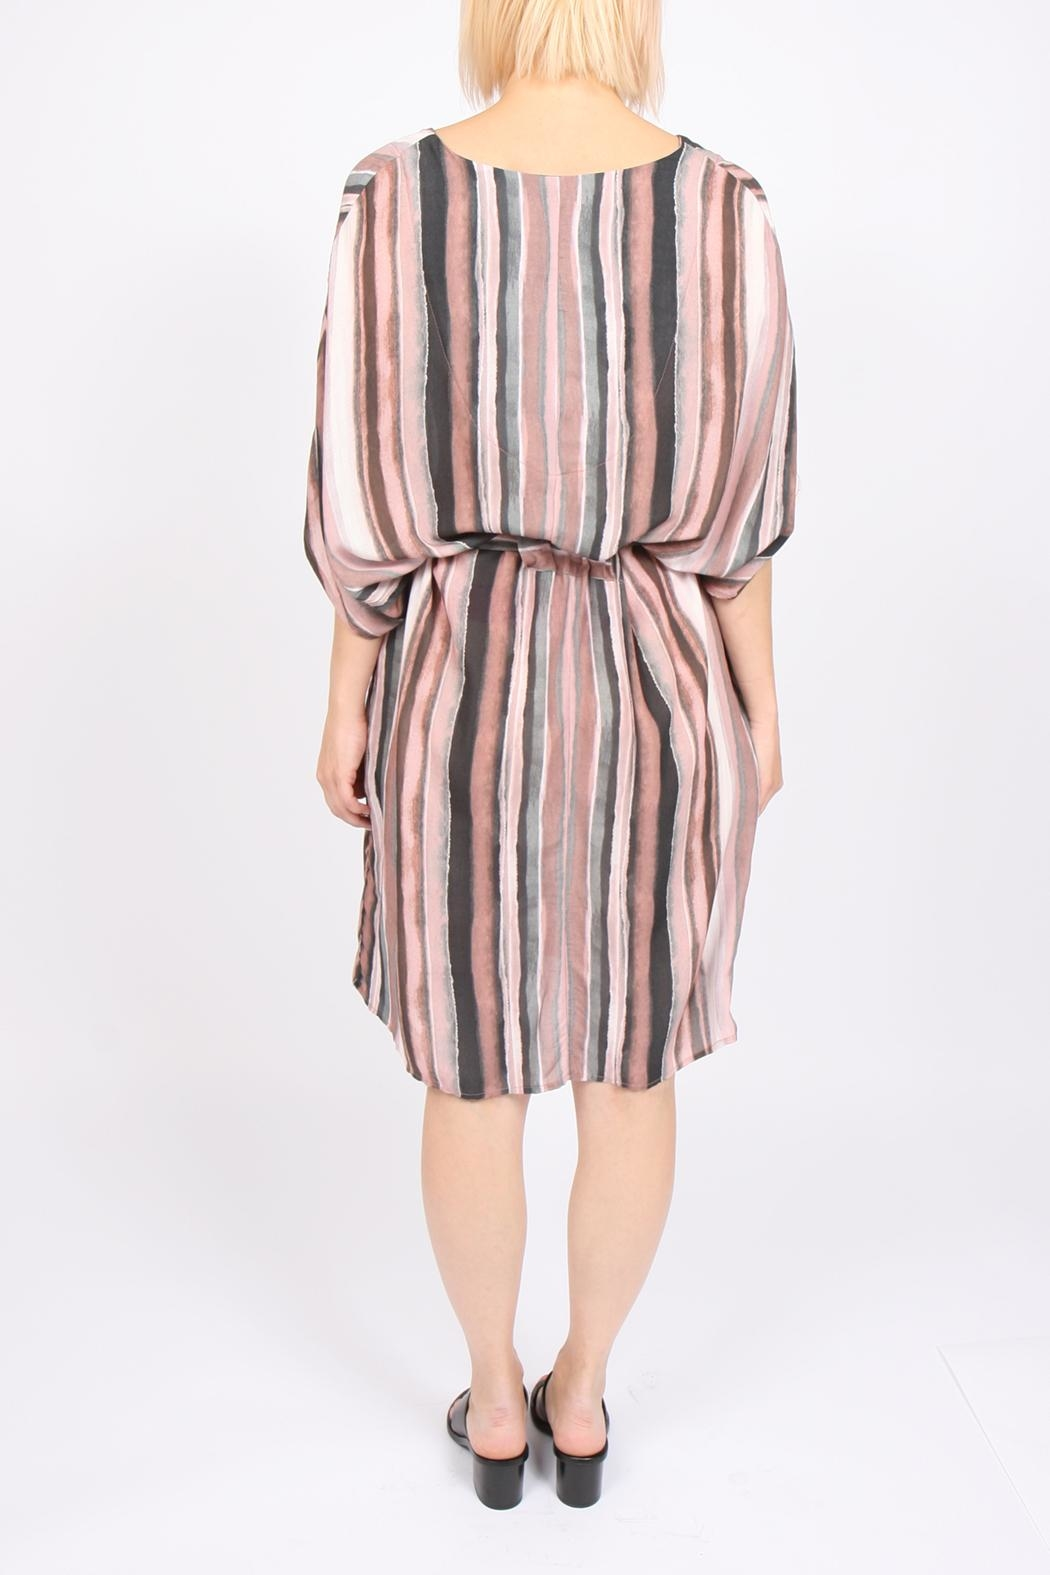 Tina + Jo Sadona Stripe Kaftan-Dress - Front Full Image